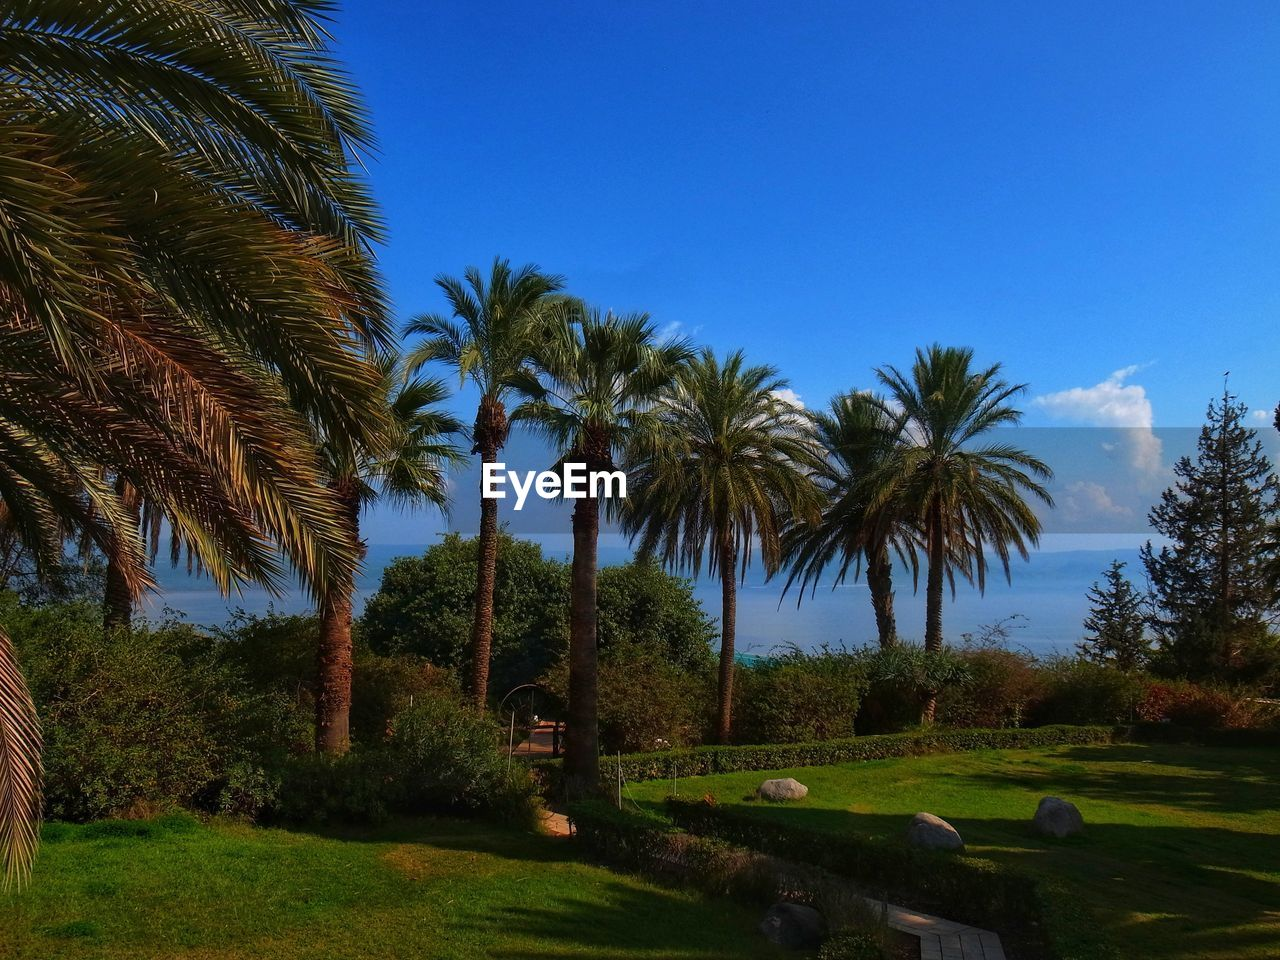 tree, plant, sky, palm tree, tropical climate, growth, beauty in nature, nature, tranquility, blue, clear sky, tranquil scene, grass, green color, scenics - nature, land, landscape, no people, environment, day, outdoors, coconut palm tree, palm leaf